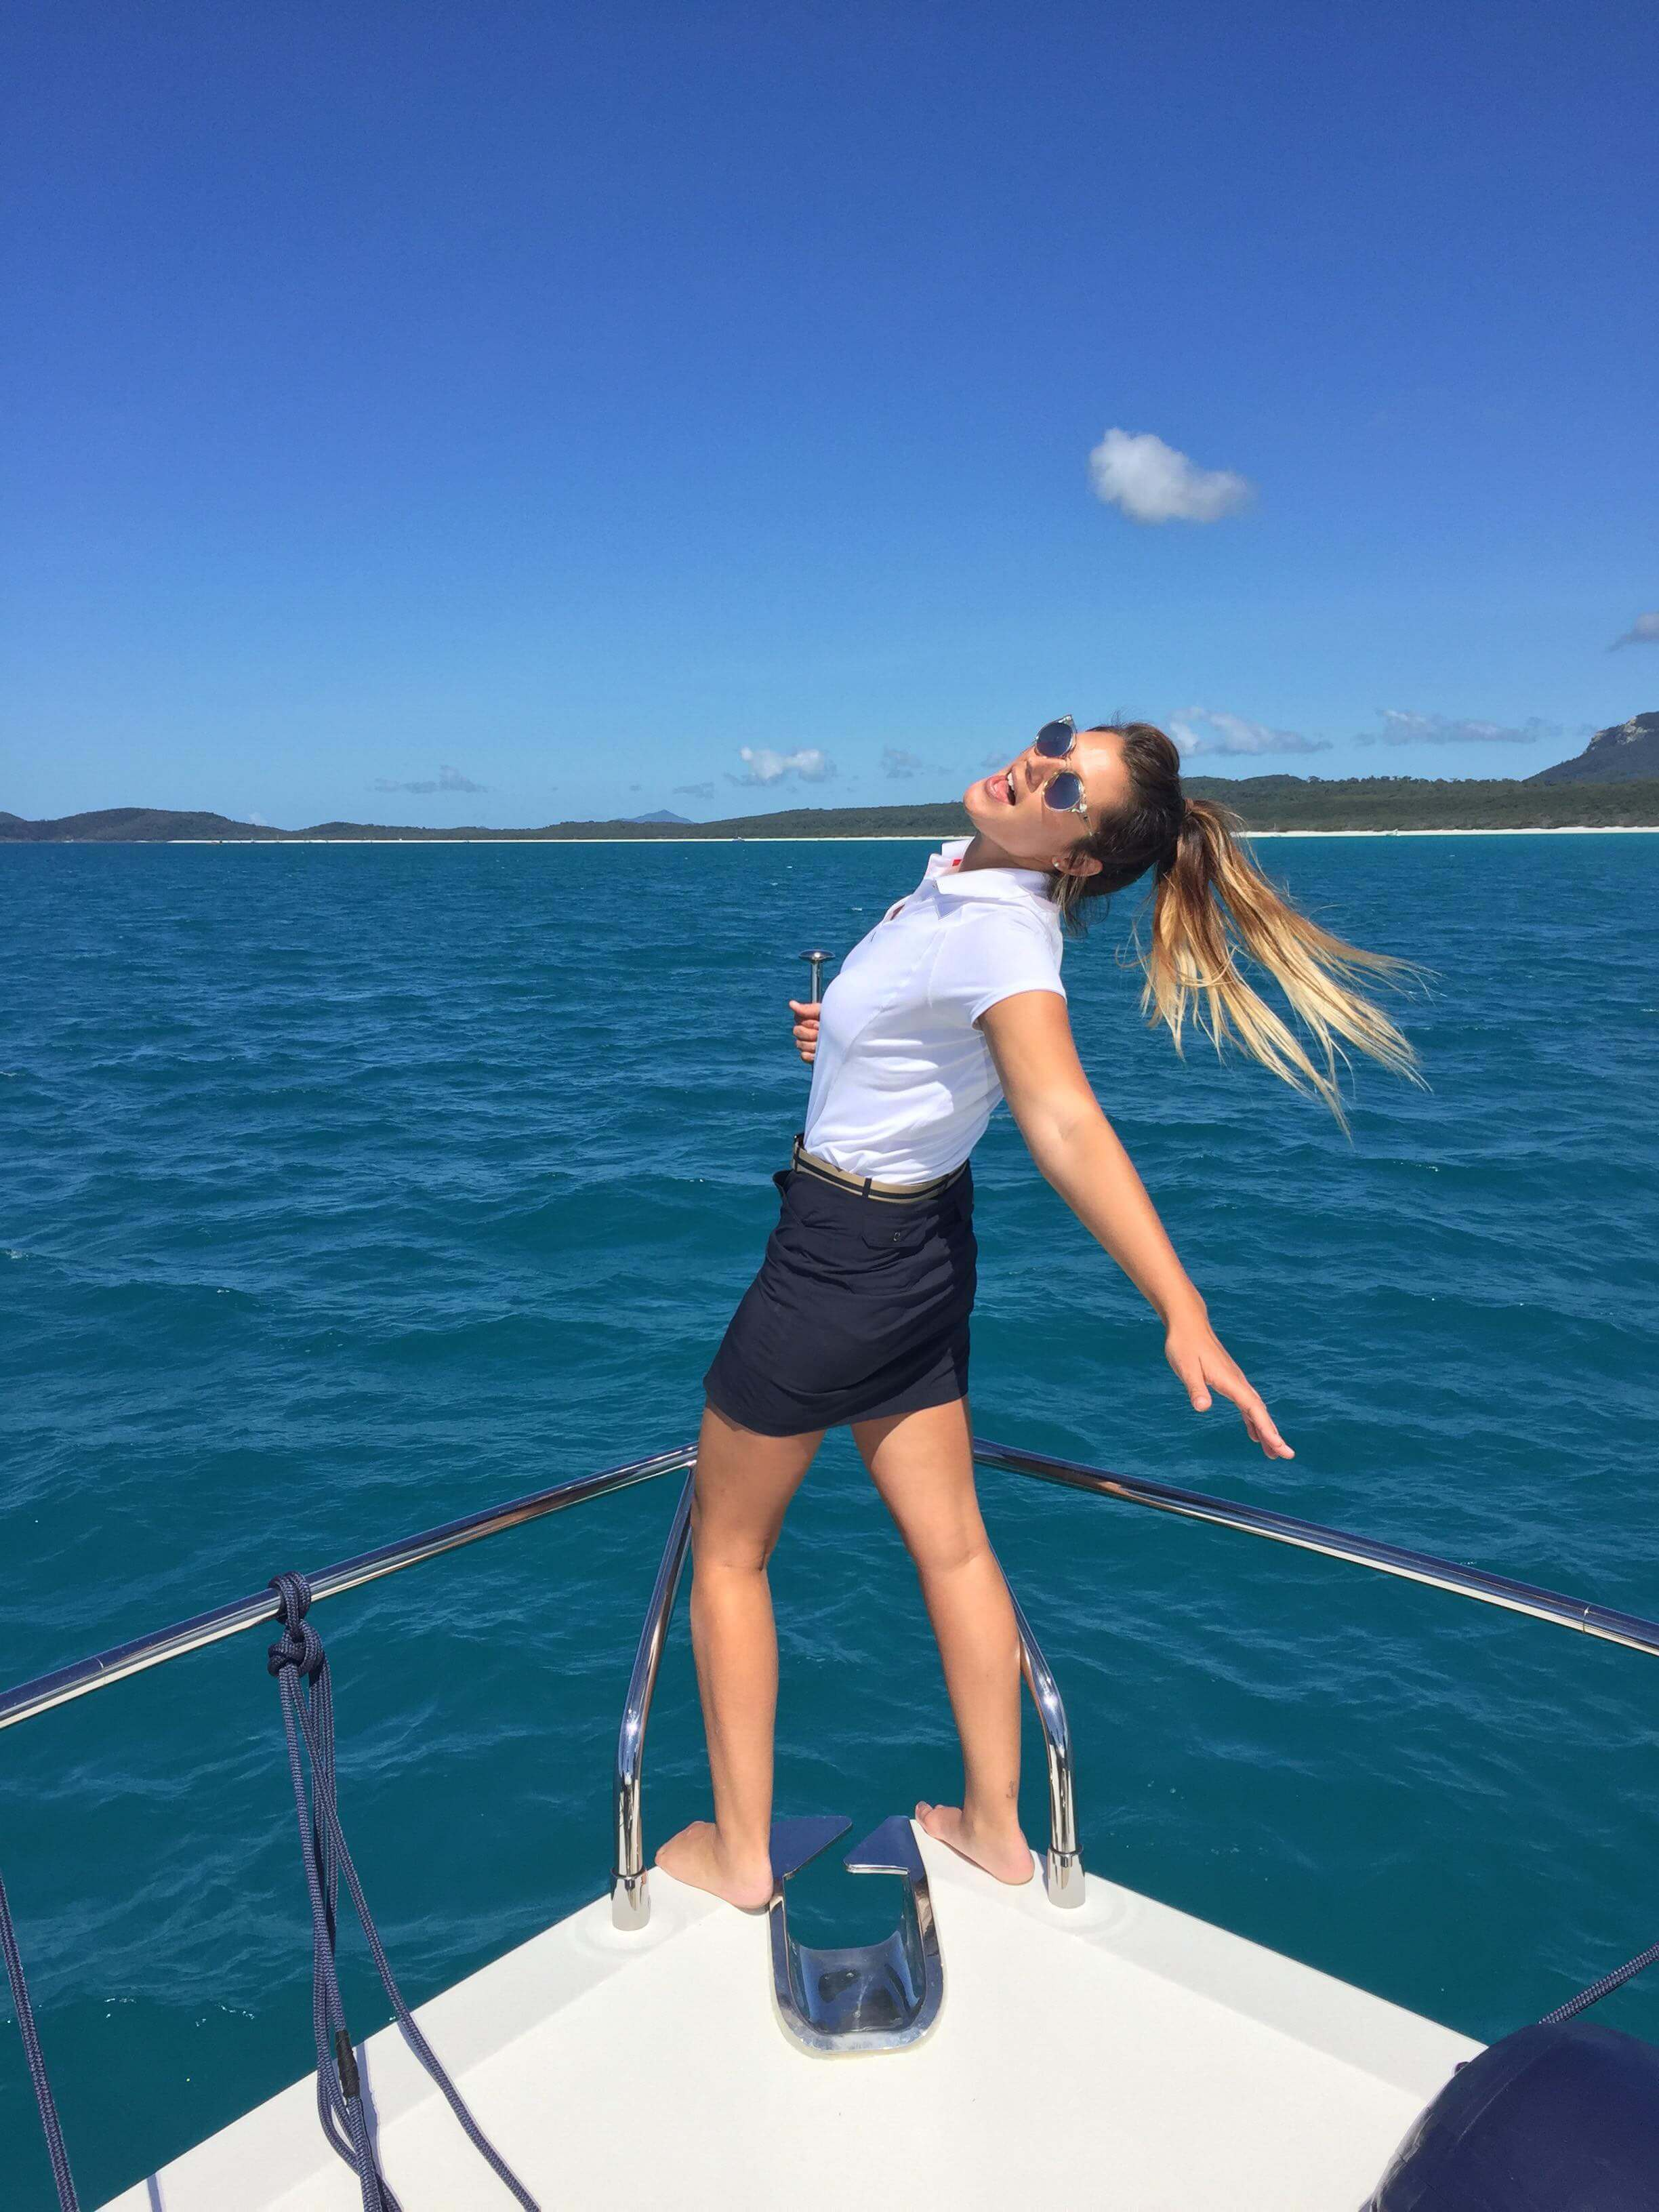 environmental scientist and yacht owner, Tahlia Walsh